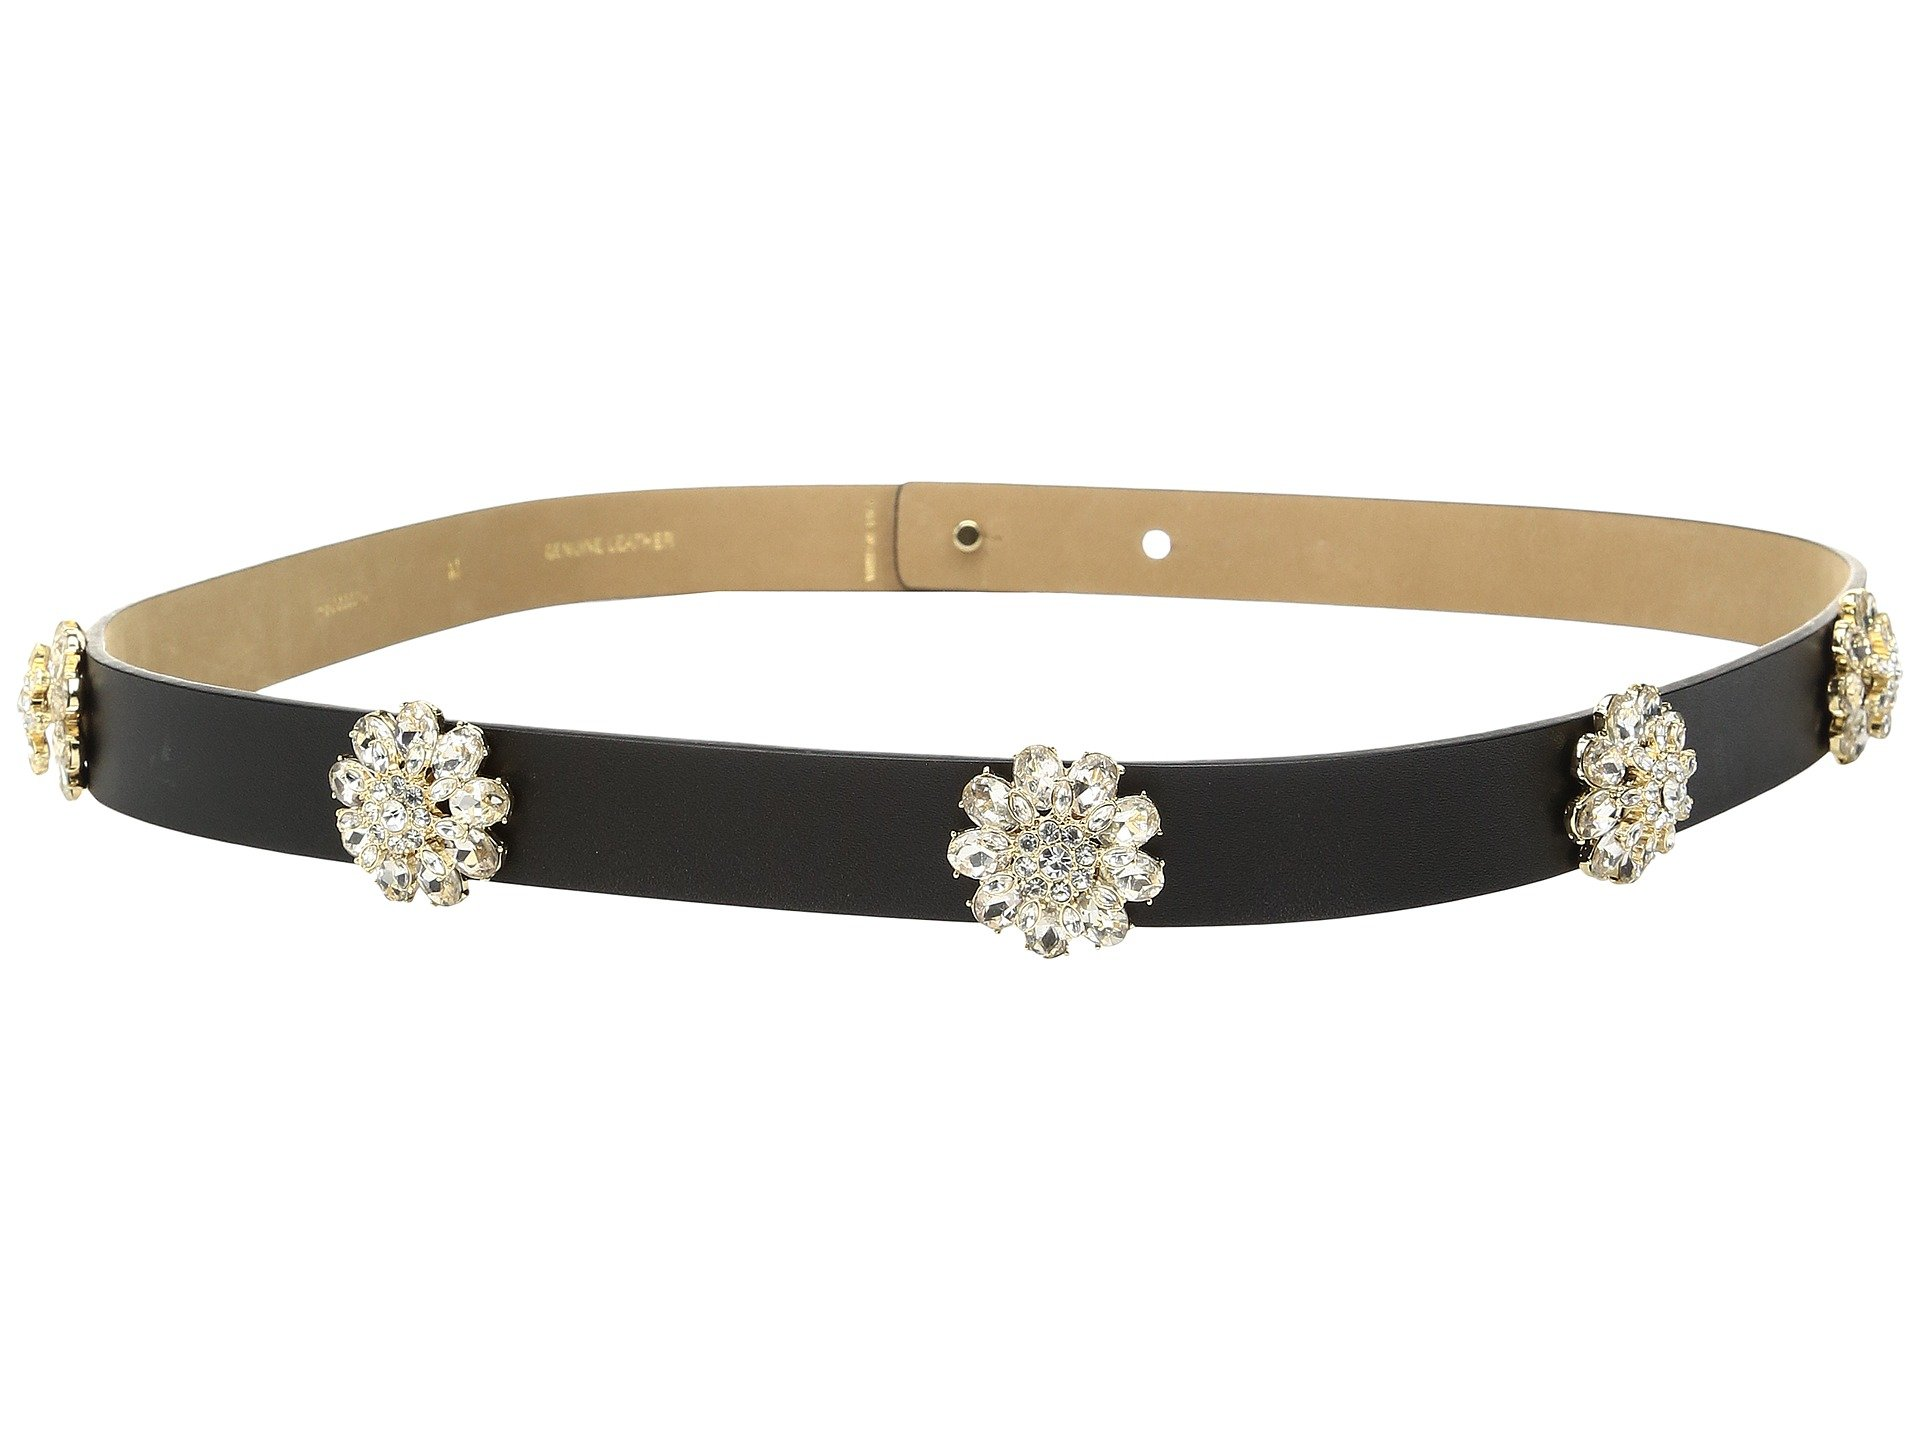 Kate Spade New York Women's 7/8'' Calf Belt with Brooch Rivets Black/Crystal Stone Belt